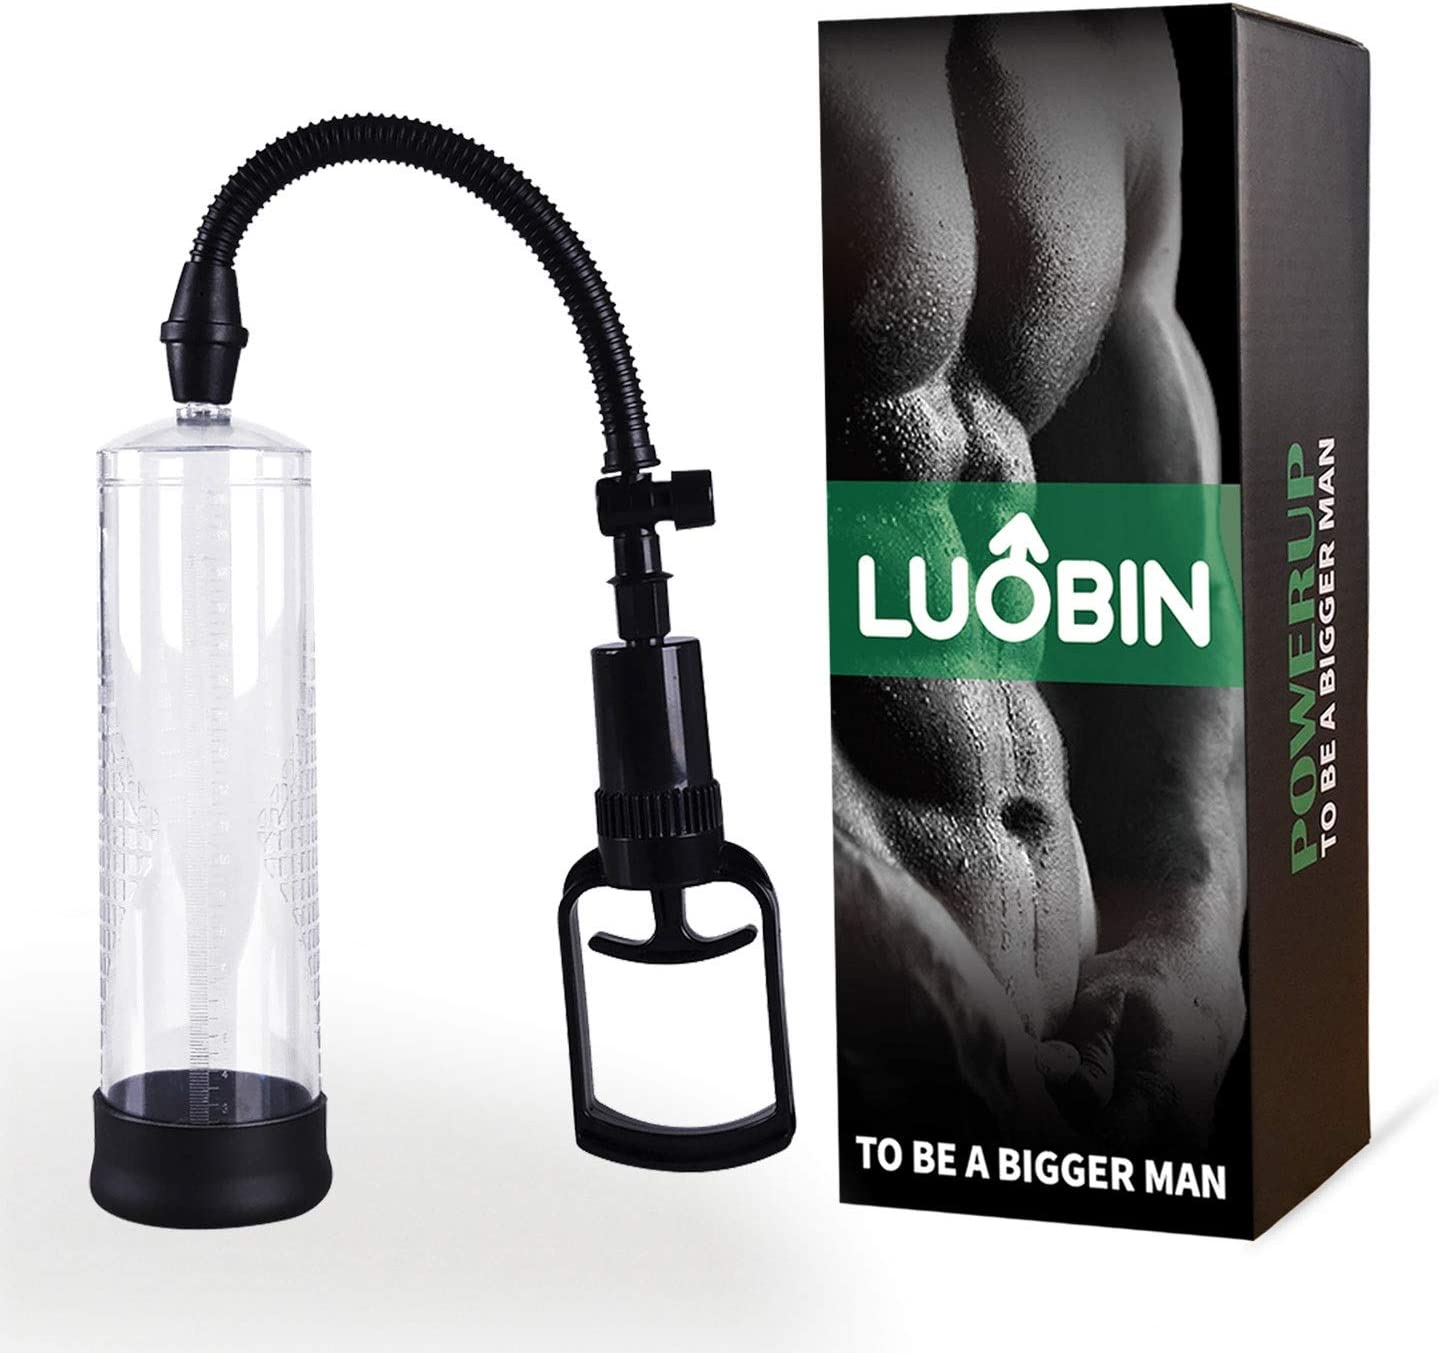 Bfucky 9.4 Inch Bigger Growth Power Vacuum Male Enhancement Enlarger Pump for Men + 3 Silicone Black Rings Point Best Choice for Shopping Season Bfucky